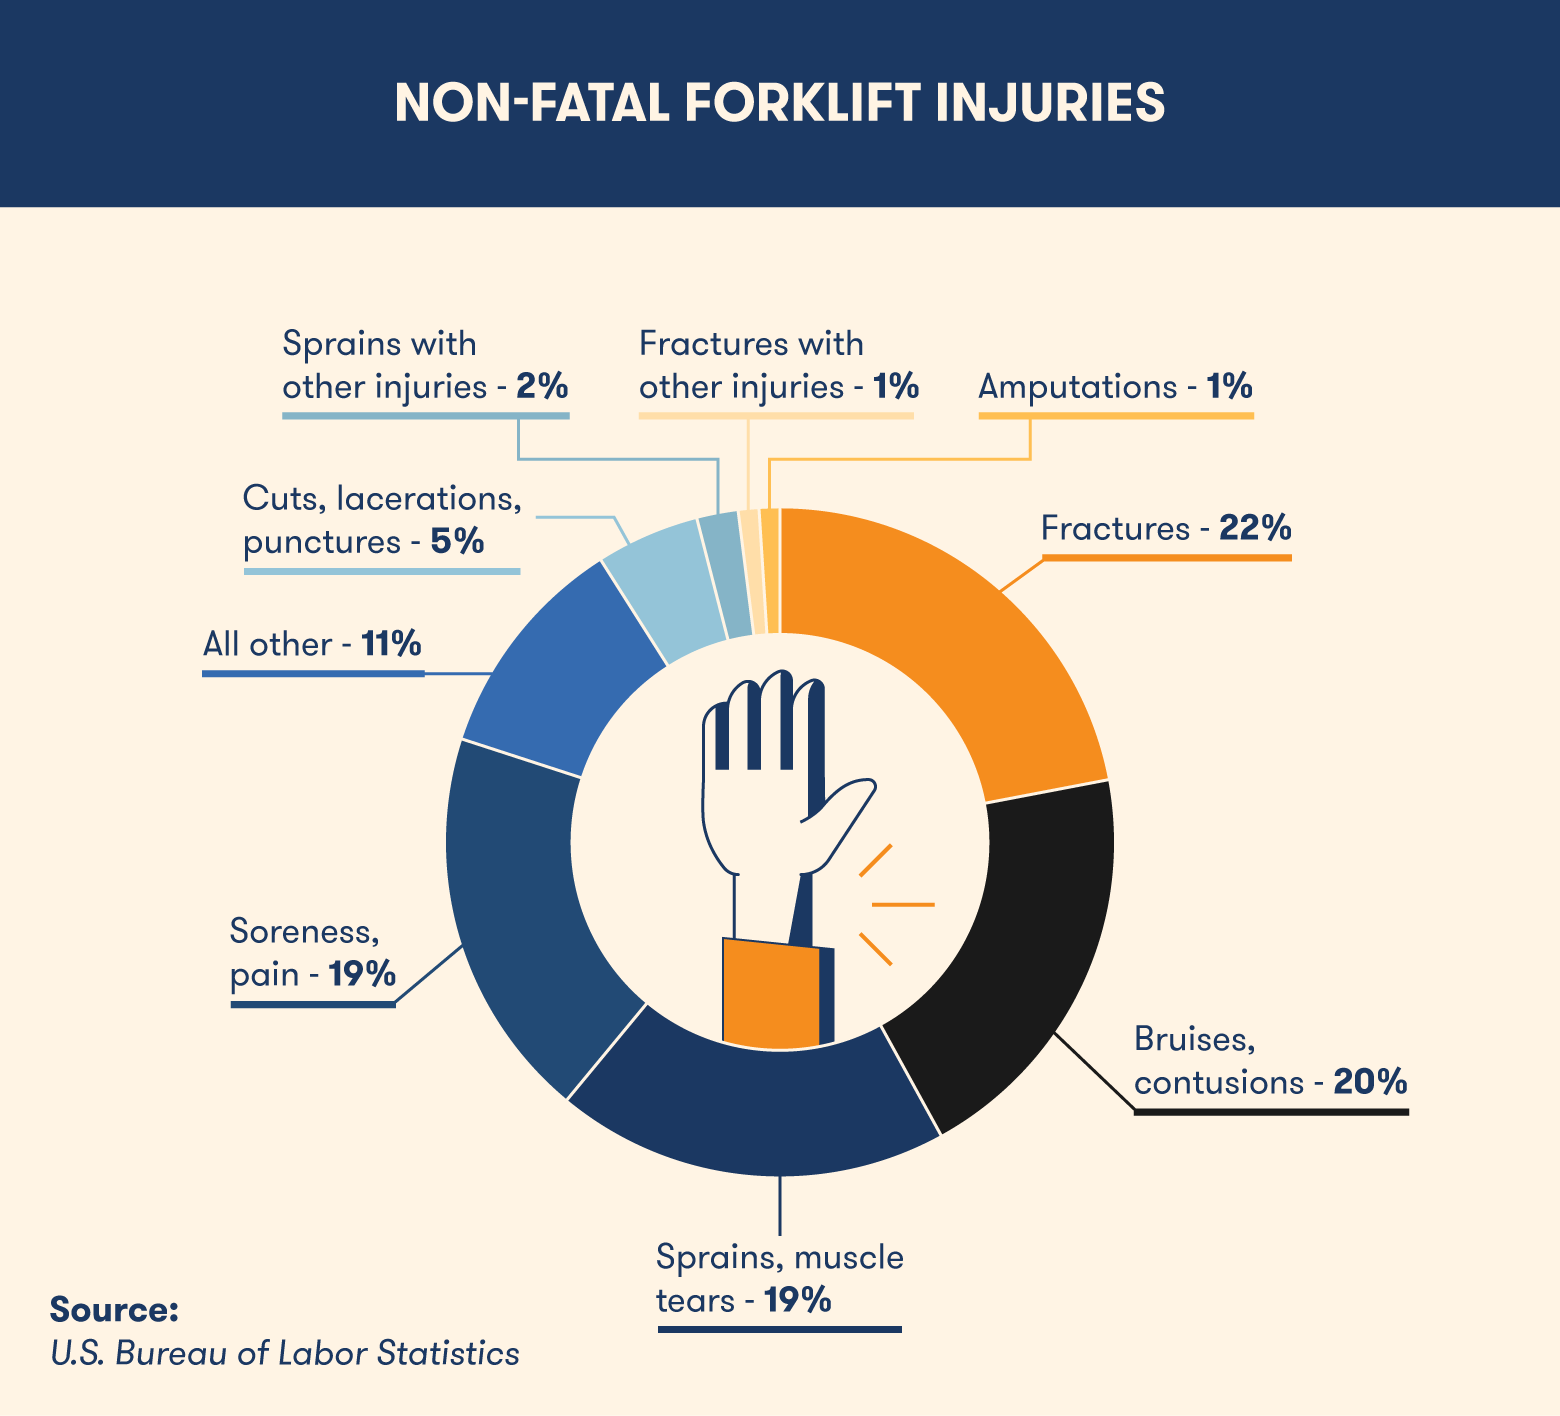 breaking down the non-fatal forklift injuries